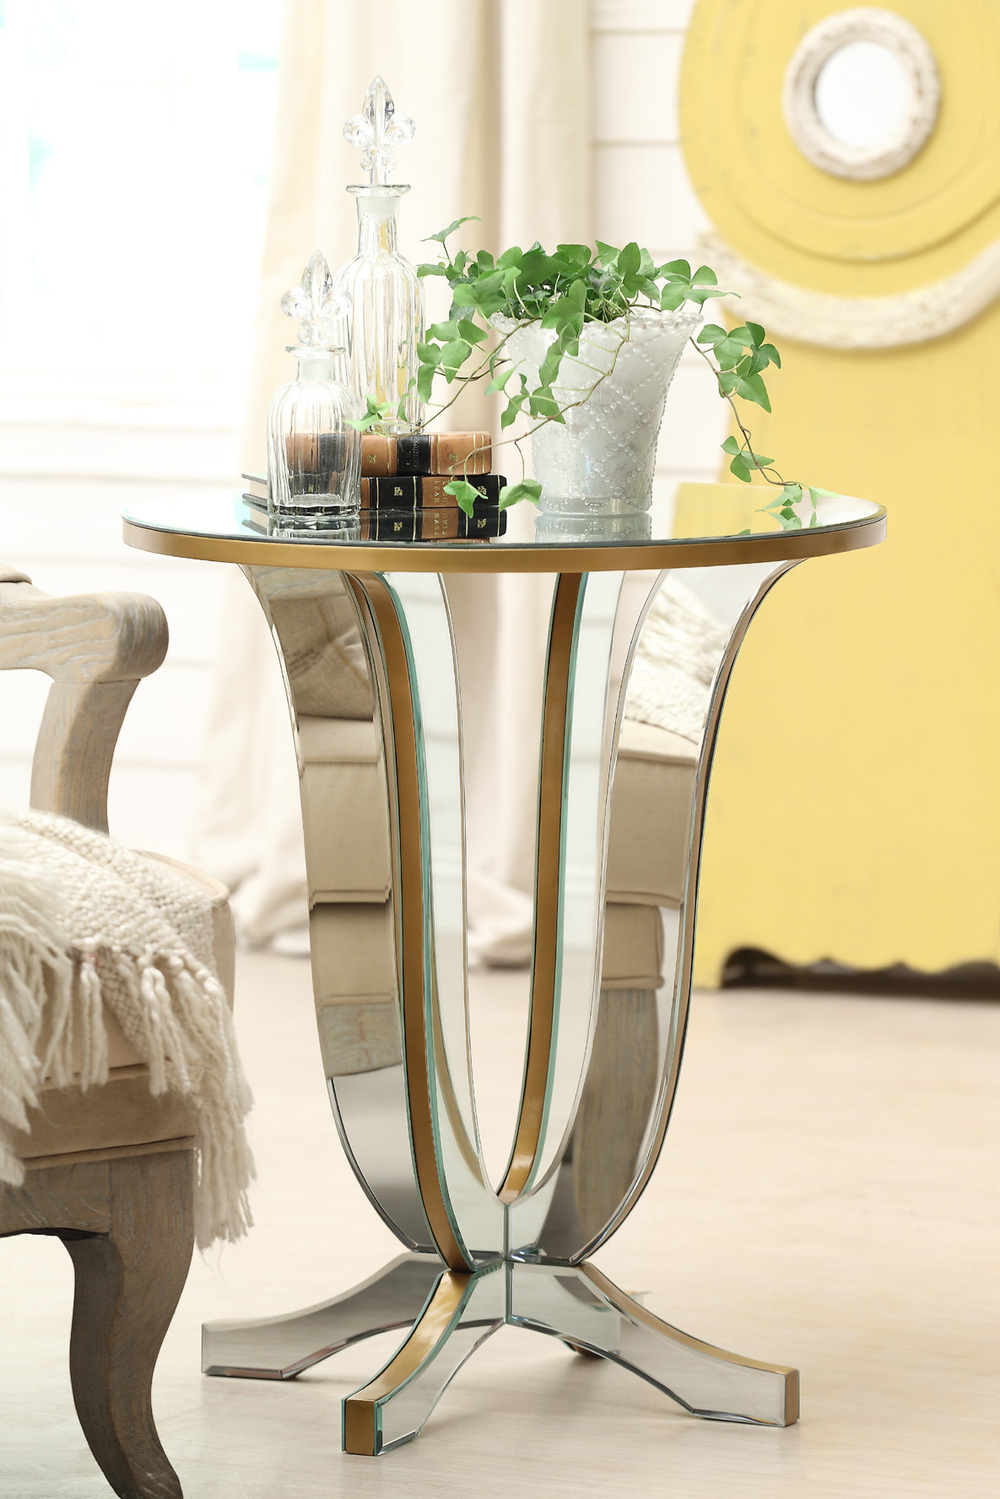 astonishing small accent tables for living room table gold furniture modern kijiji white glass antique decorative target round outdoor full size decorations home porch and chairs